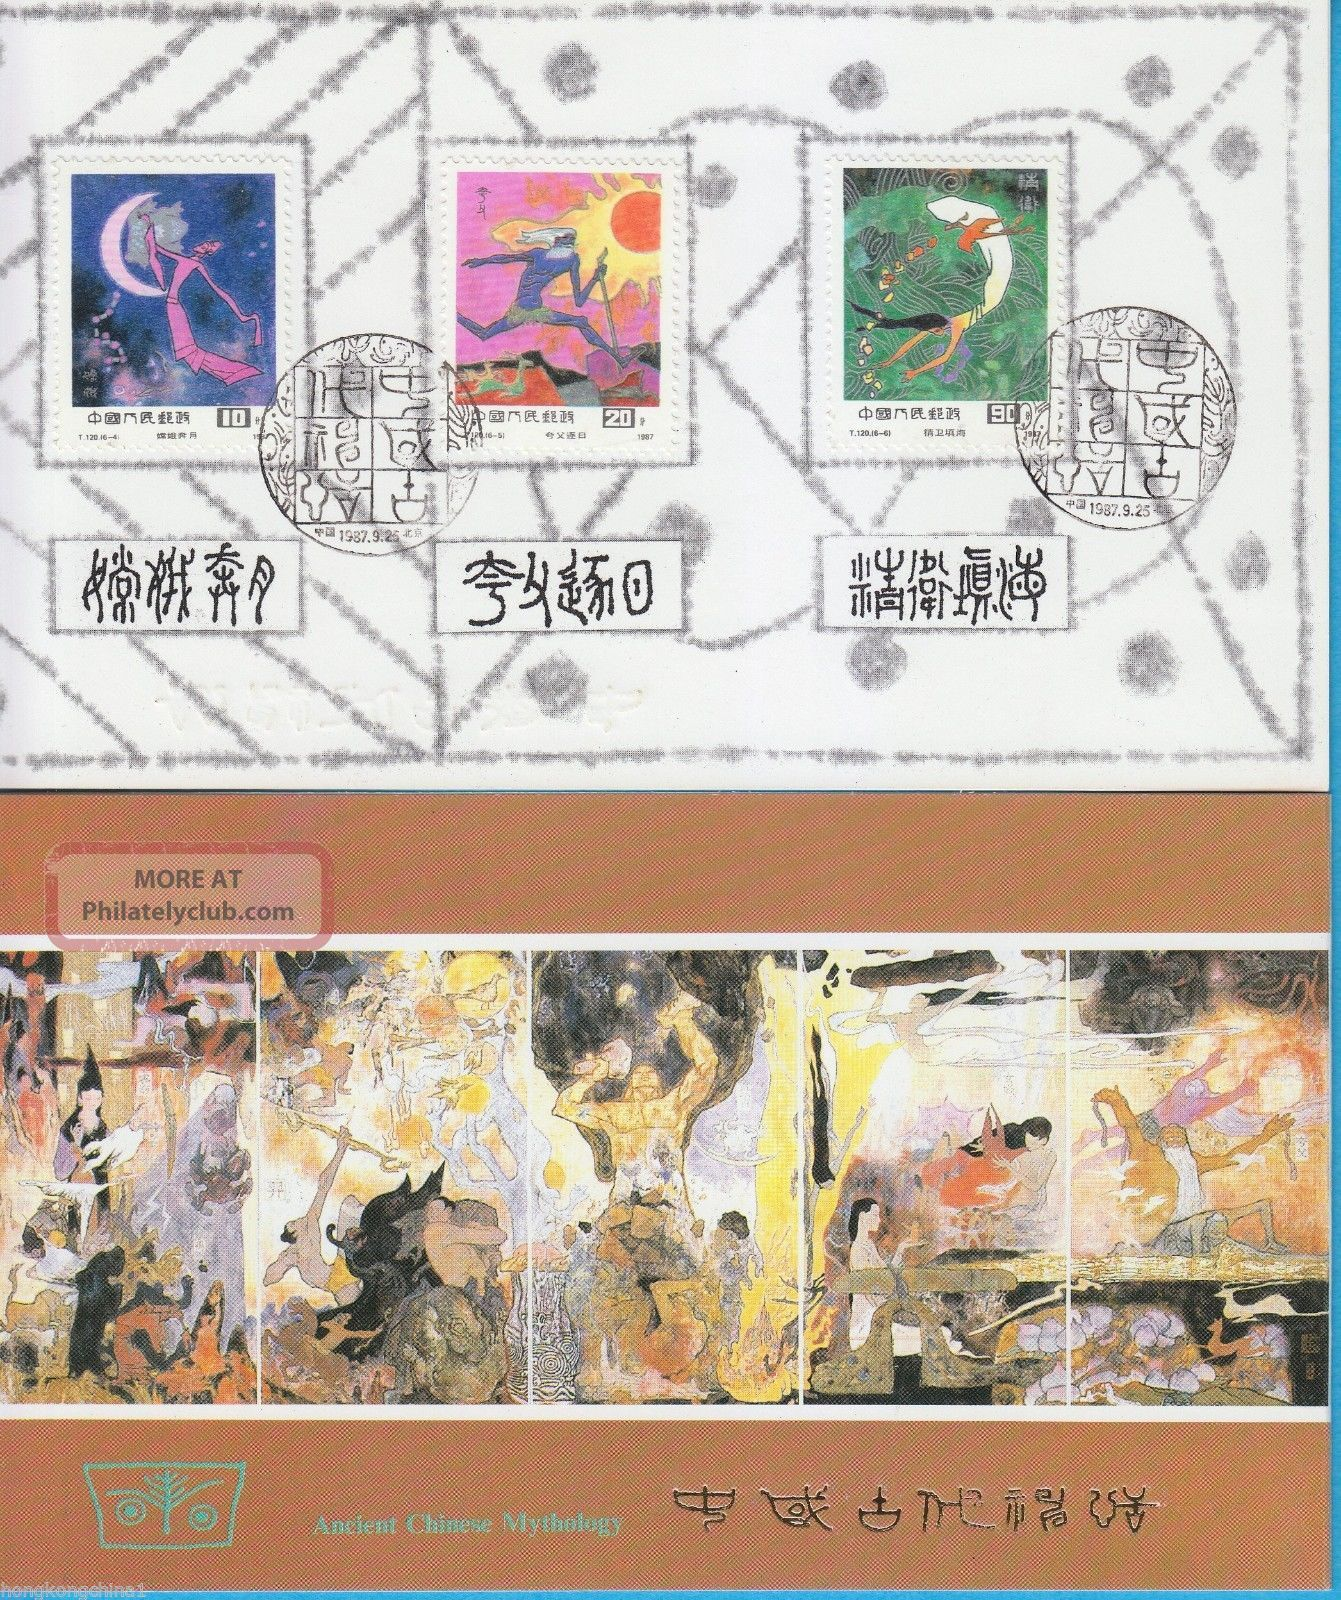 China Stamp Fdc 1987 T120 Ancient Chinese Mythology Cn134669 Asia photo